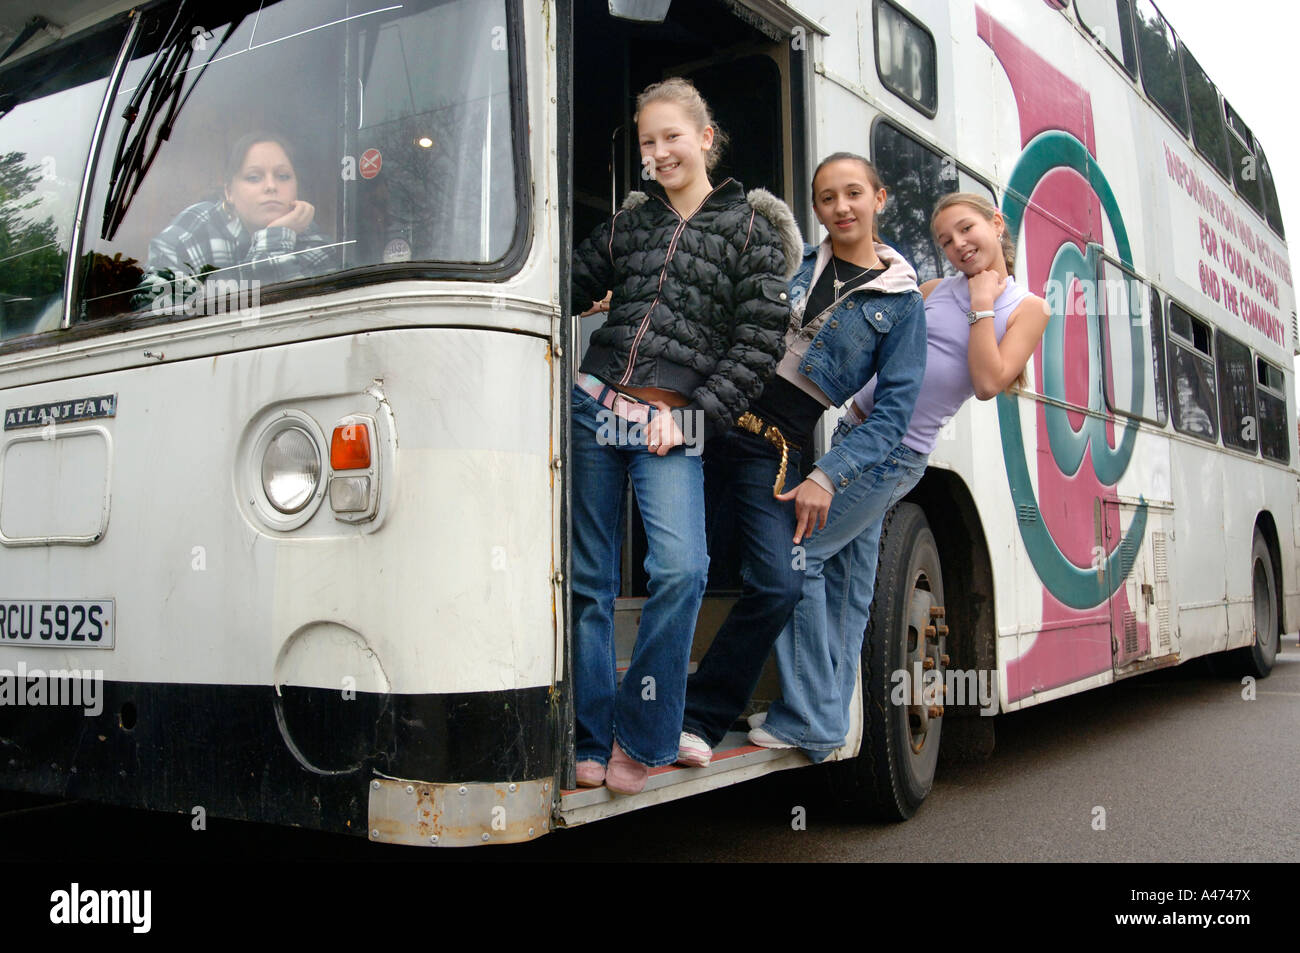 Pictures of girls on bus, family young nudism